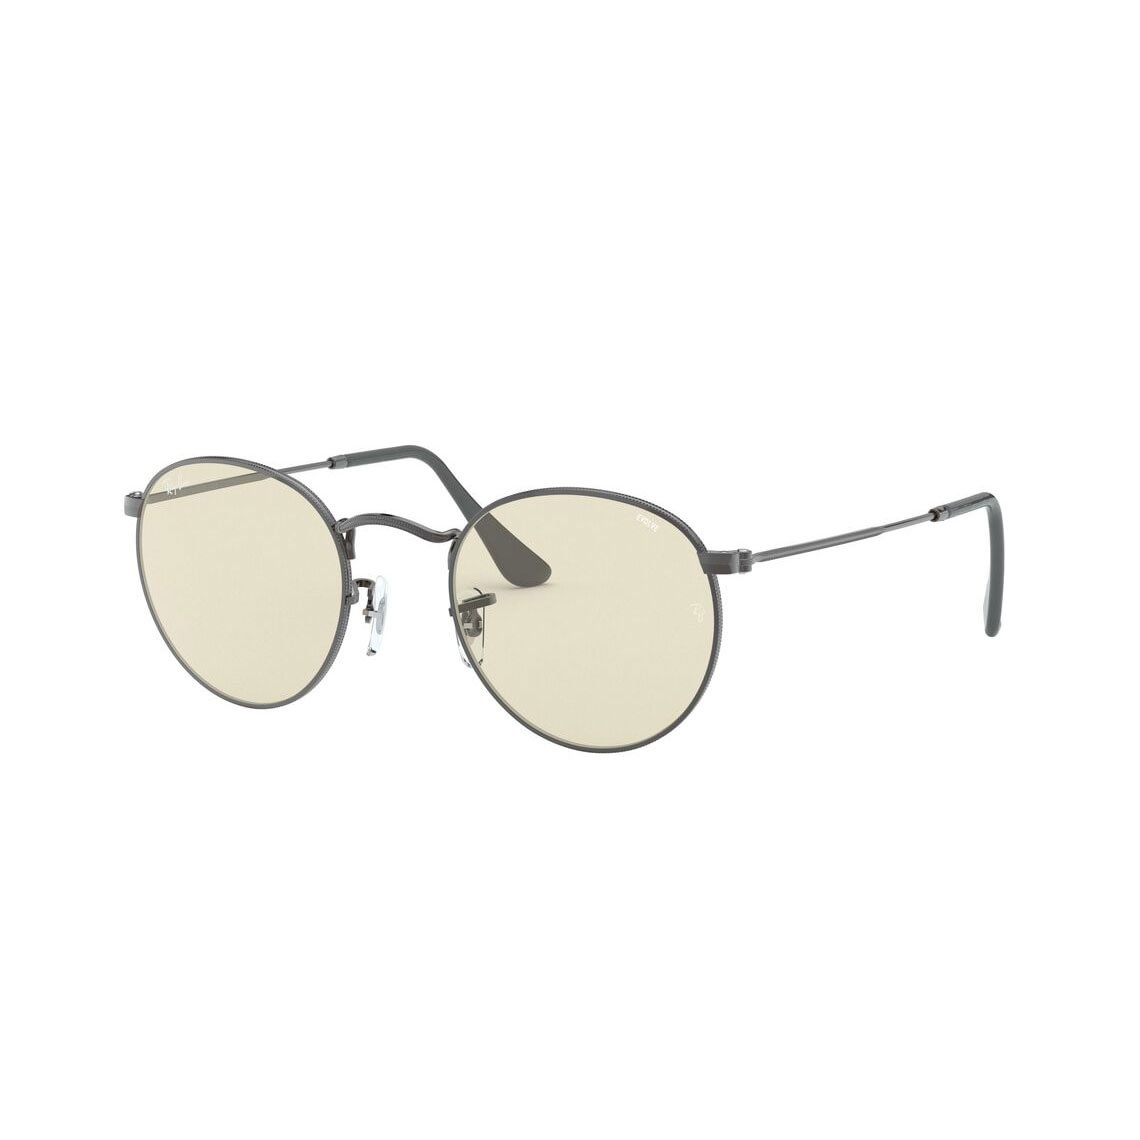 Ray-Ban Round metal RB3447 Solid Evolve 004/T2 5021